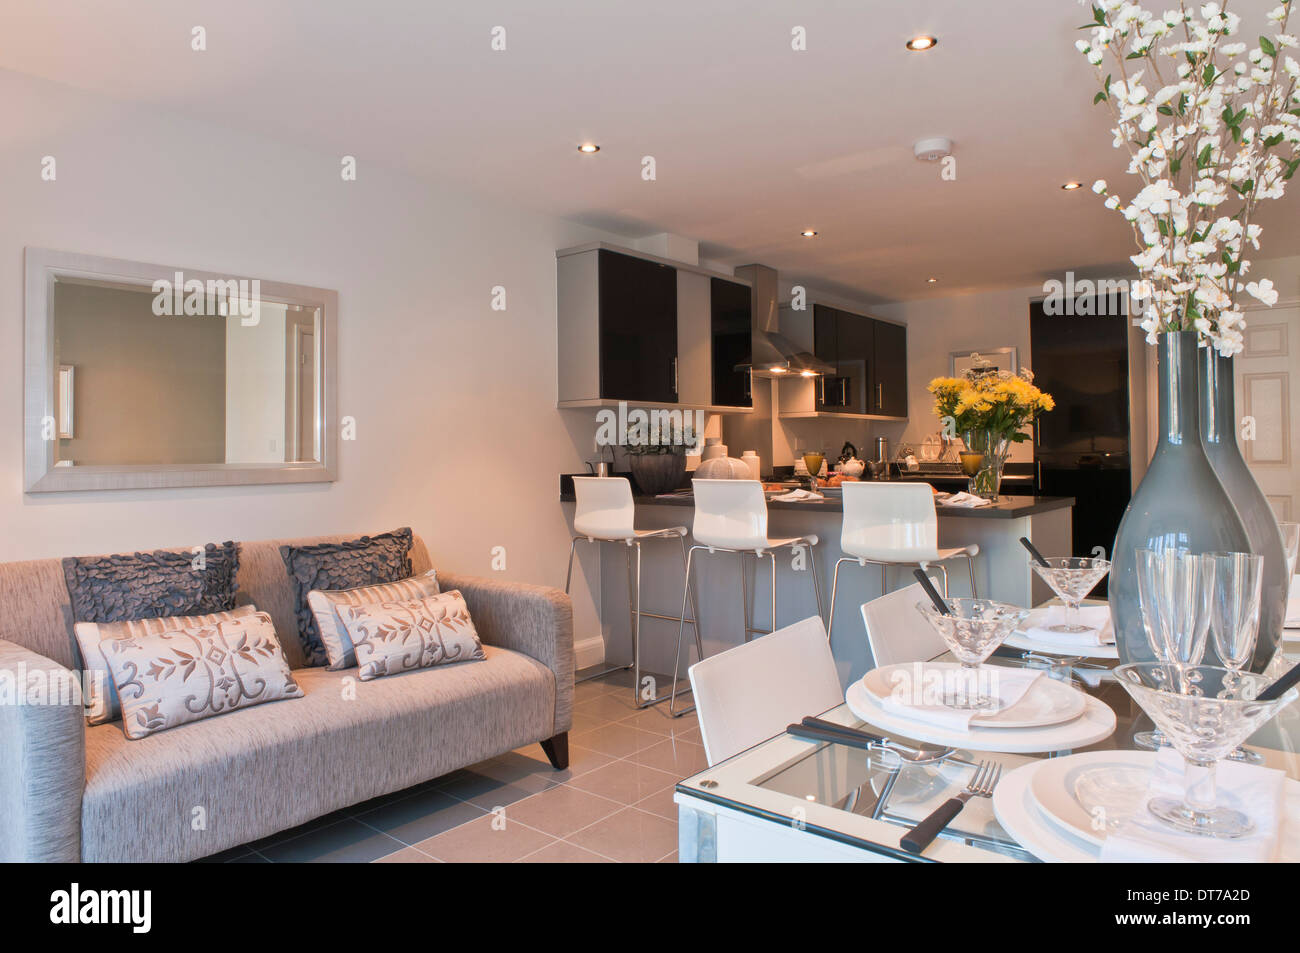 Show home kitchen / diner with sofa Stock Photo - Alamy